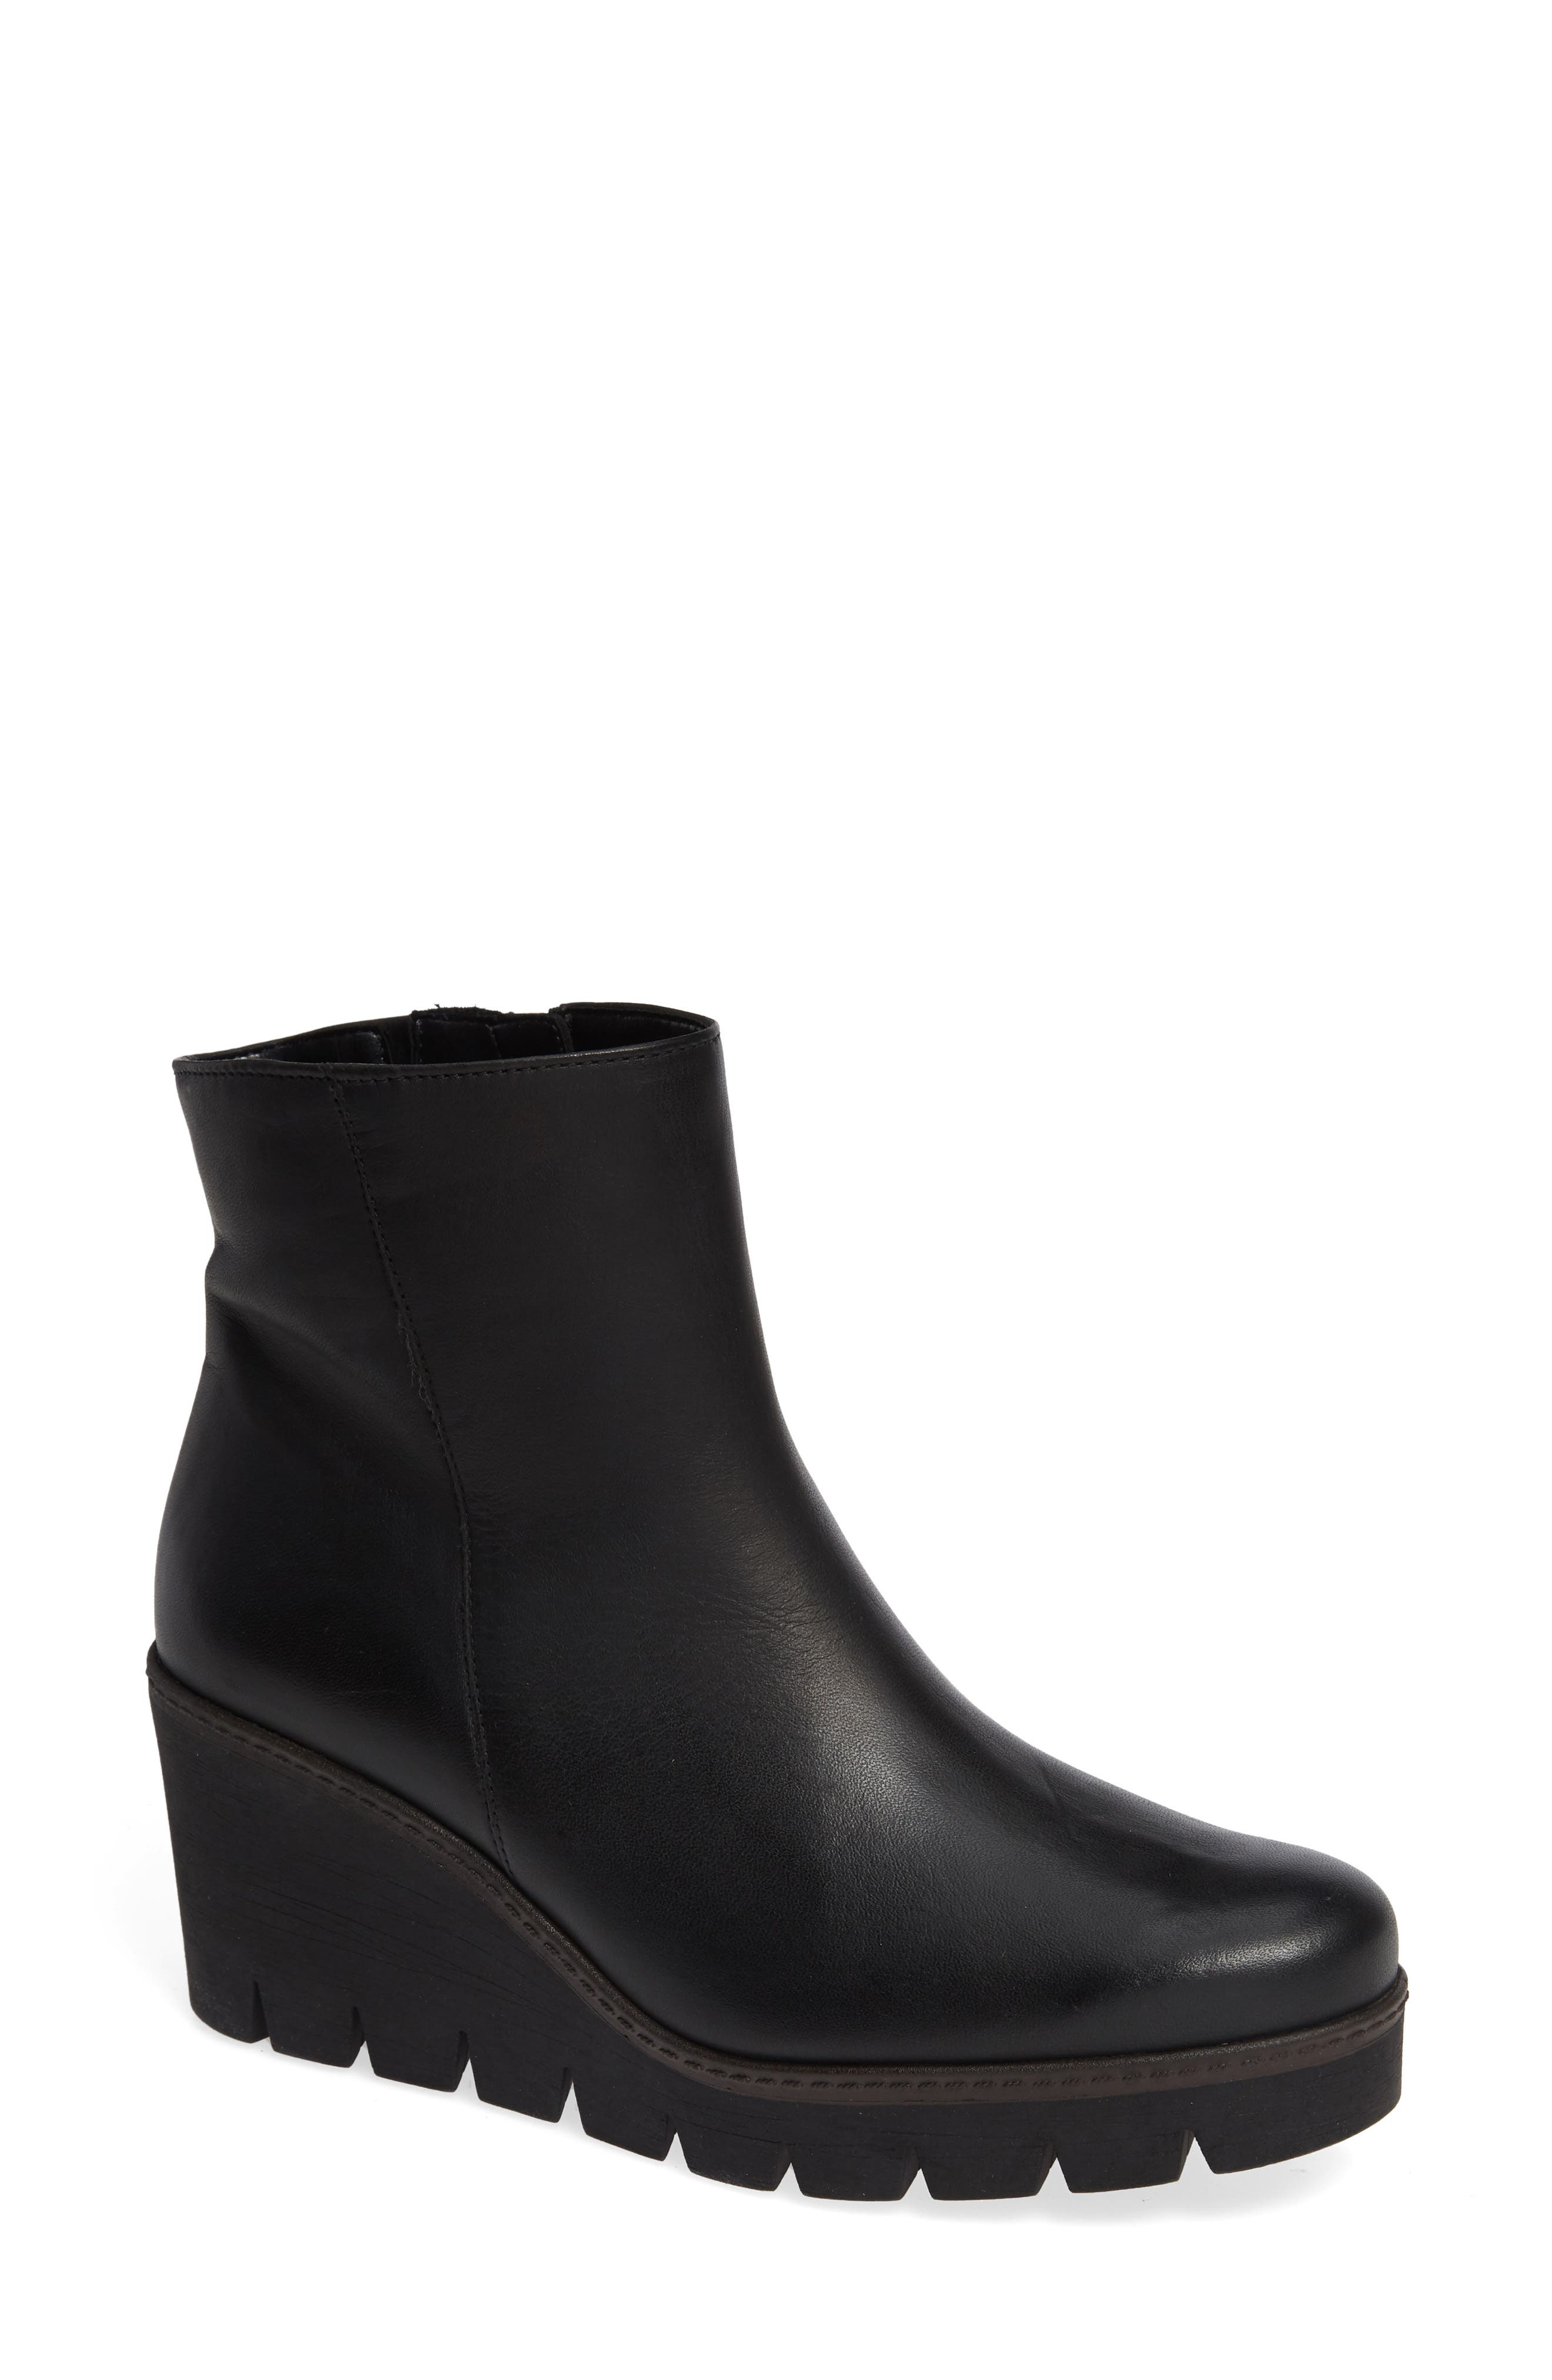 Friendly Wedge Bootie,                             Main thumbnail 1, color,                             BLACK LEATHER